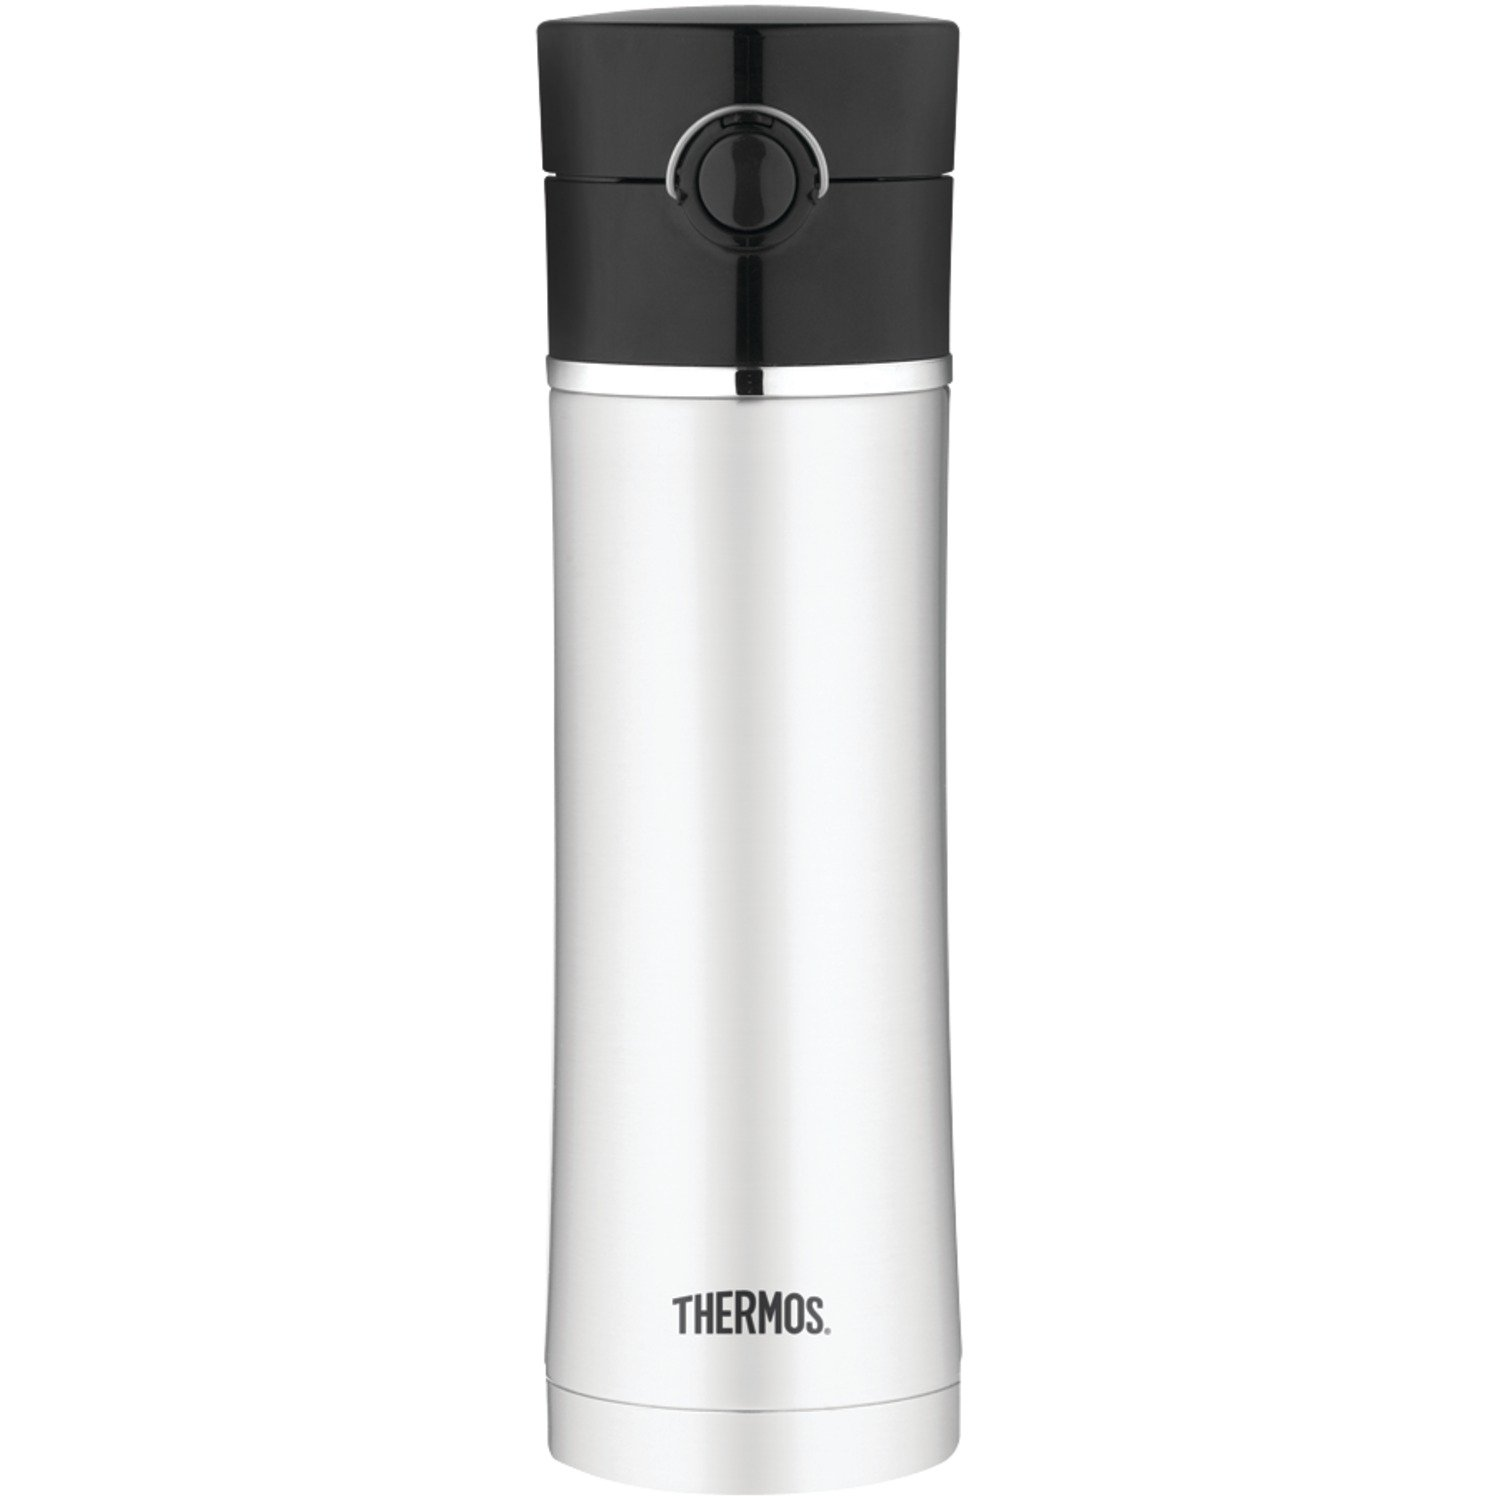 Thermos Sipp 16-Ounce Drink Bottle, Black by Thermos